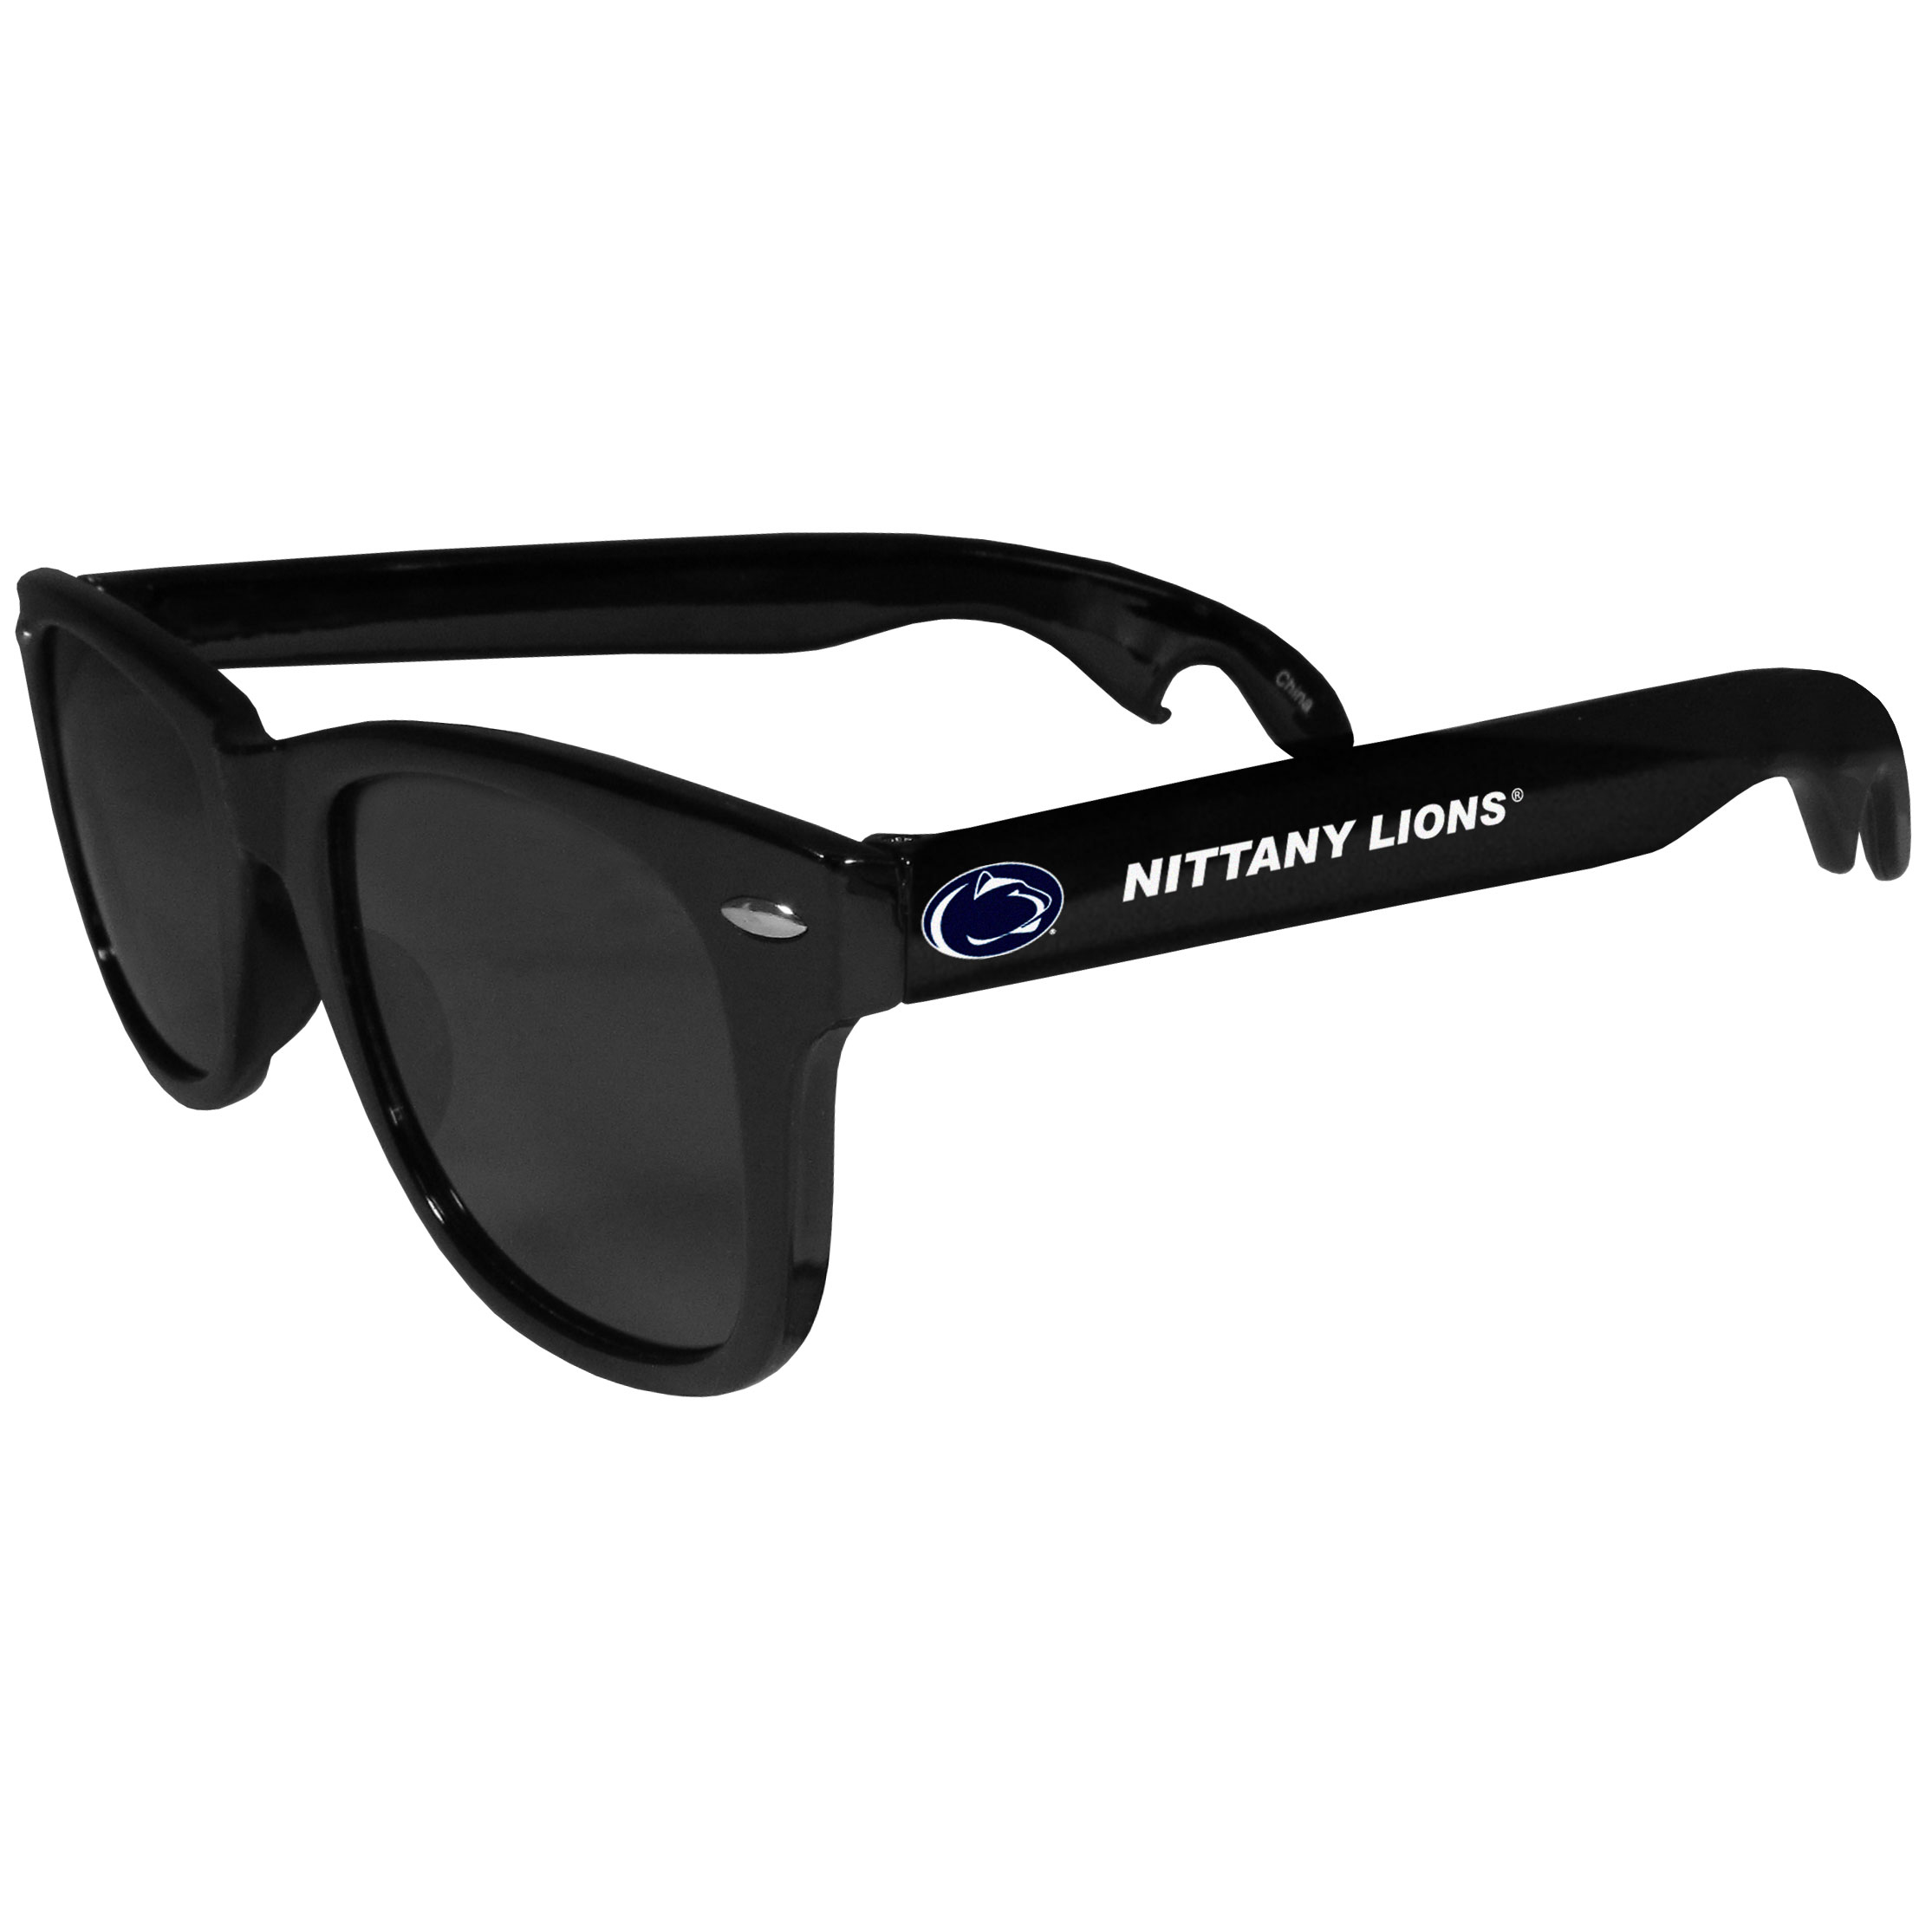 Penn St. Nittany Lions Beachfarer Bottle Opener Sunglasses - Seriously, these sunglasses open bottles! Keep the party going with these amazing Penn St. Nittany Lions bottle opener sunglasses. The stylish retro frames feature team designs on the arms and functional bottle openers on the end of the arms. Whether you are at the beach or having a backyard BBQ on game day, these shades will keep your eyes protected with 100% UVA/UVB protection and keep you hydrated with the handy bottle opener arms.